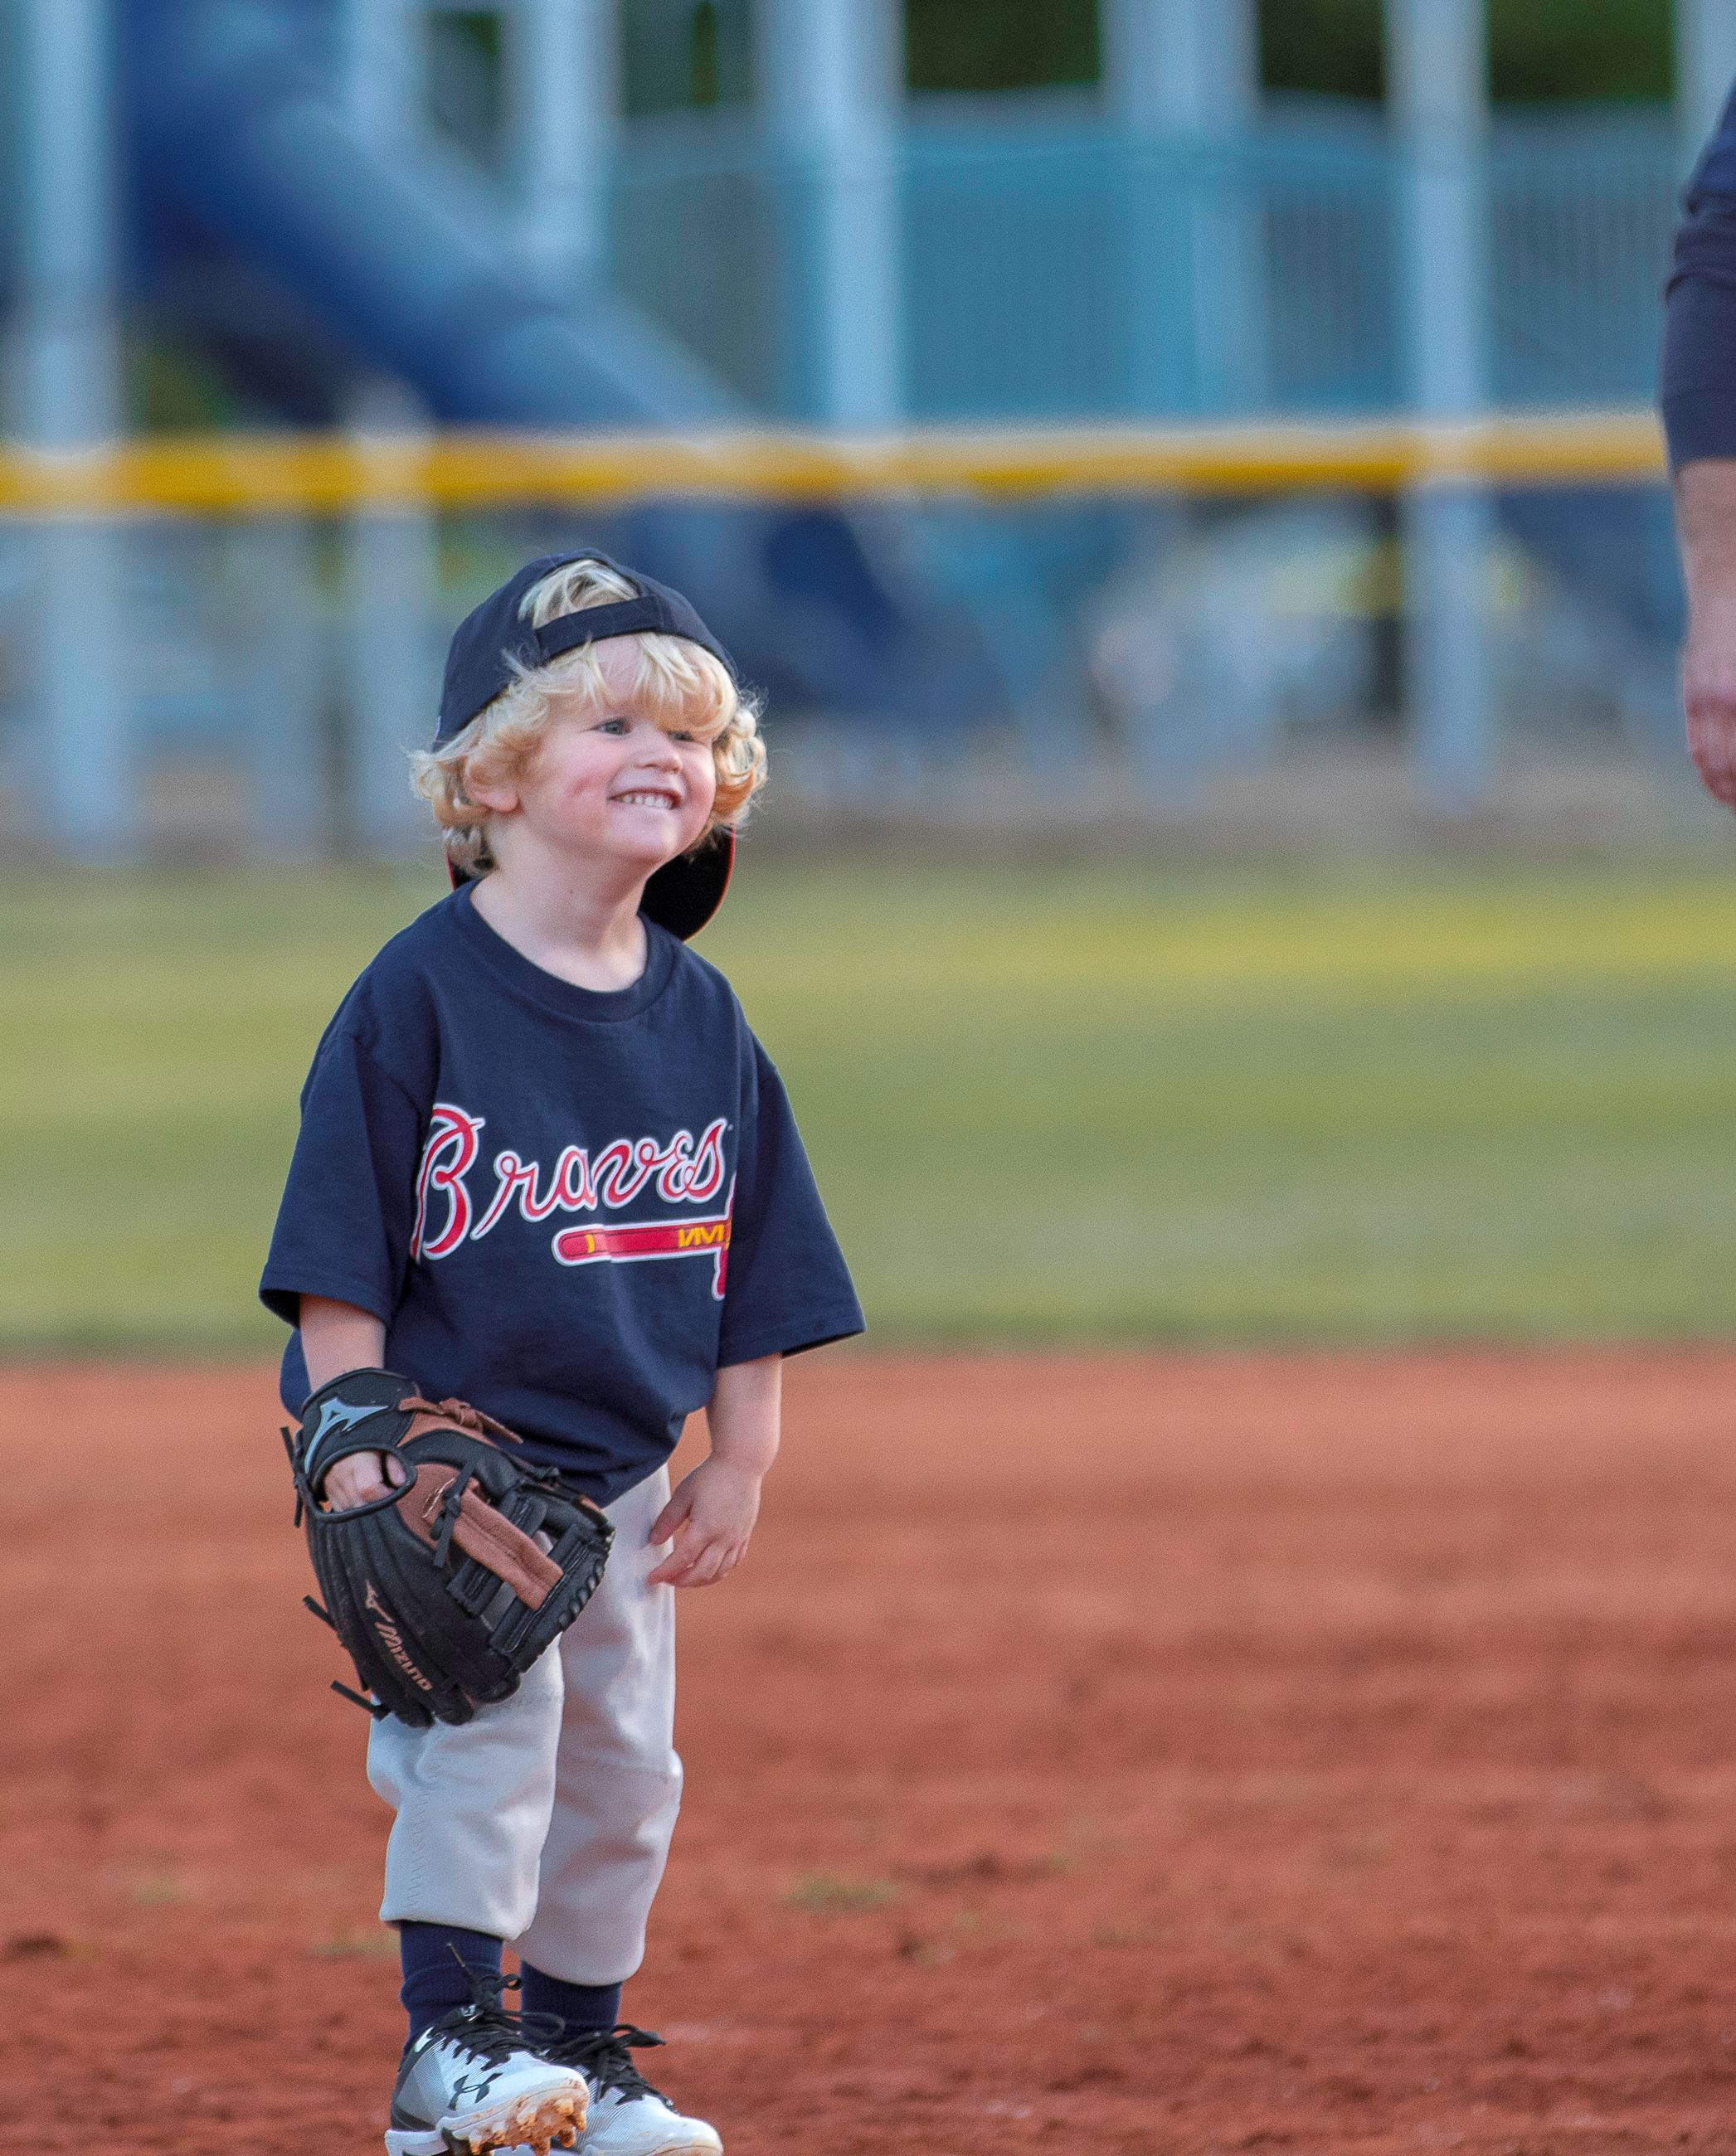 Image of little boy with baseball glove.